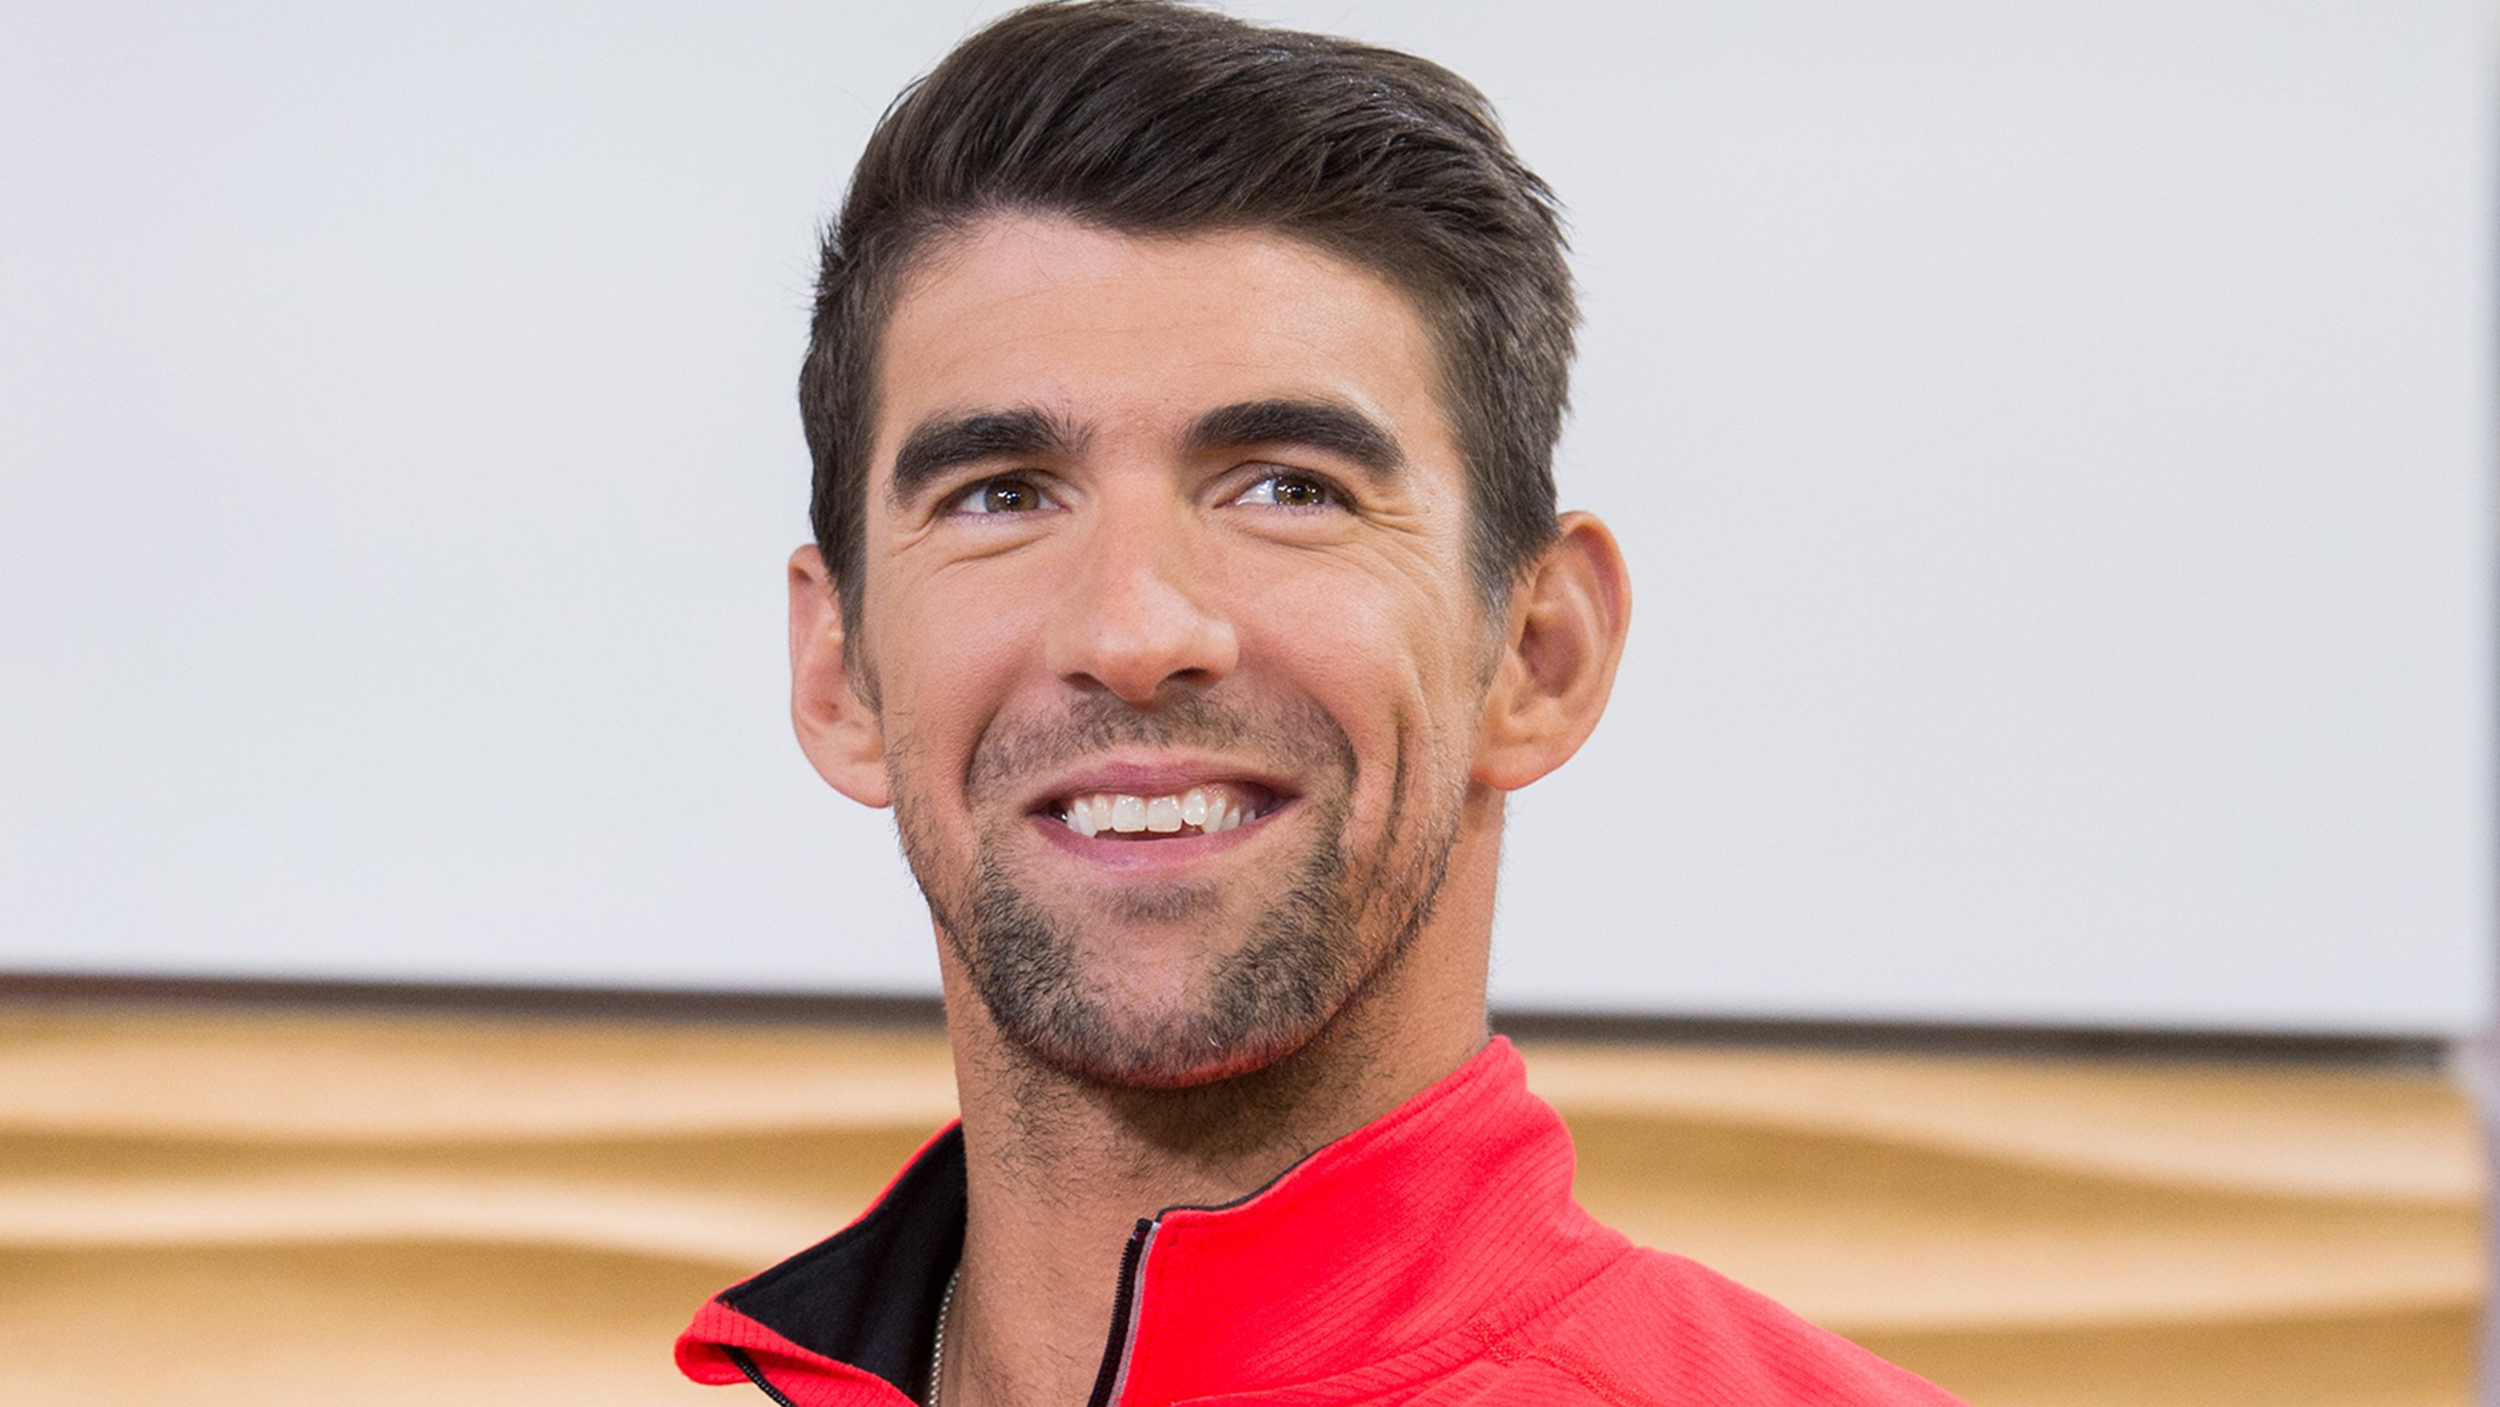 'I didn't want to be alive:' Michael Phelps talks about struggle with depression